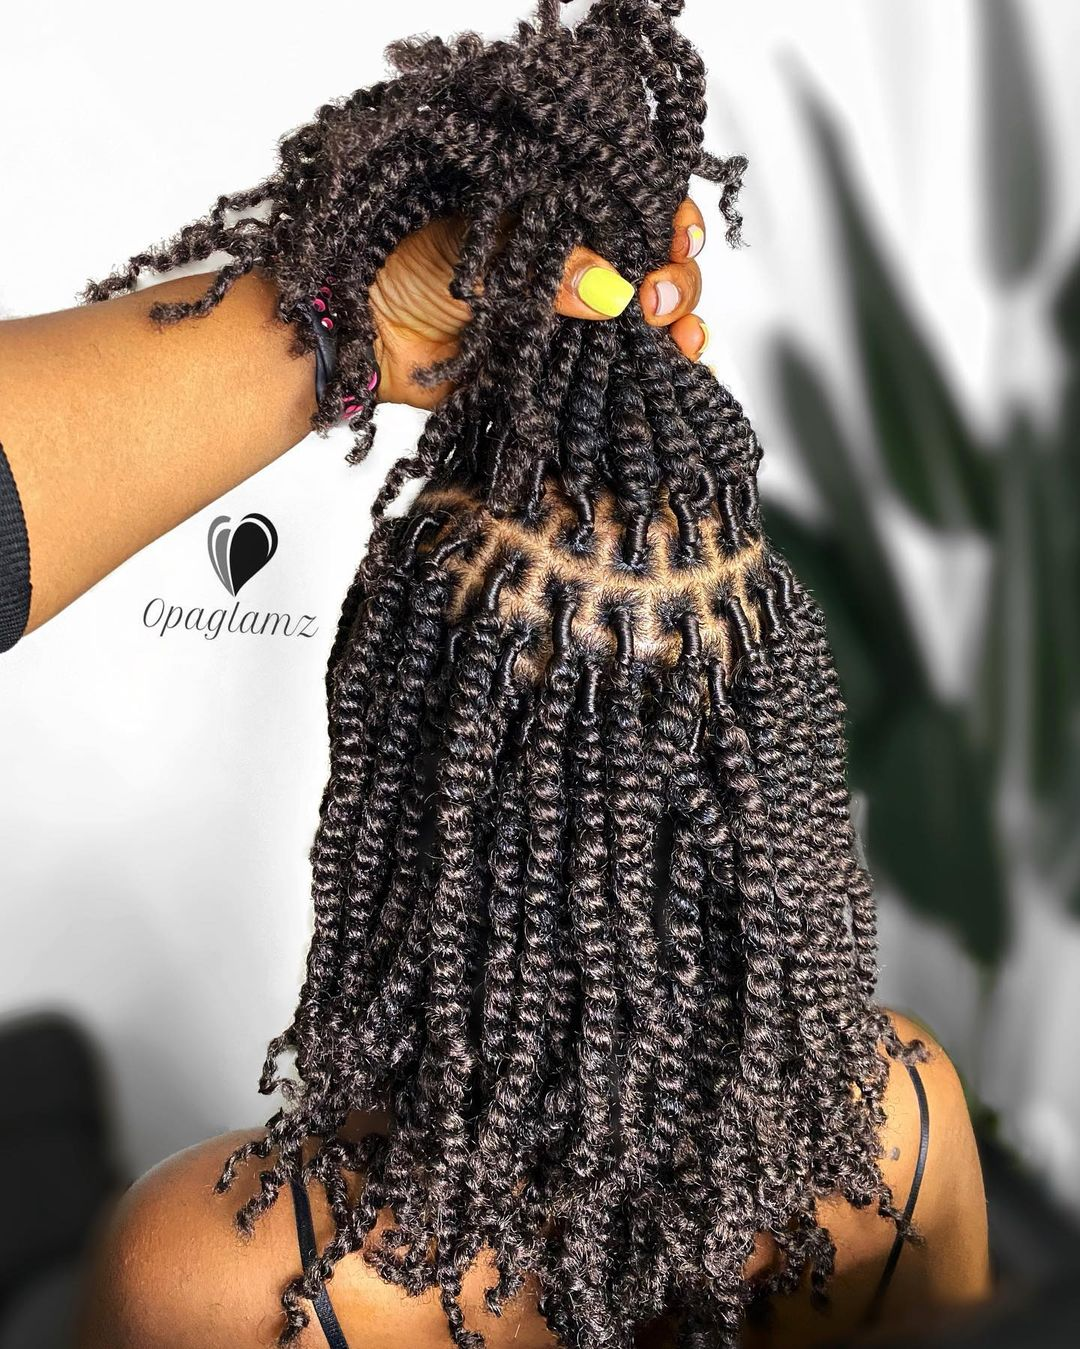 black hairstyles for kids natural hair protective styles - low maintenance hairstyles.